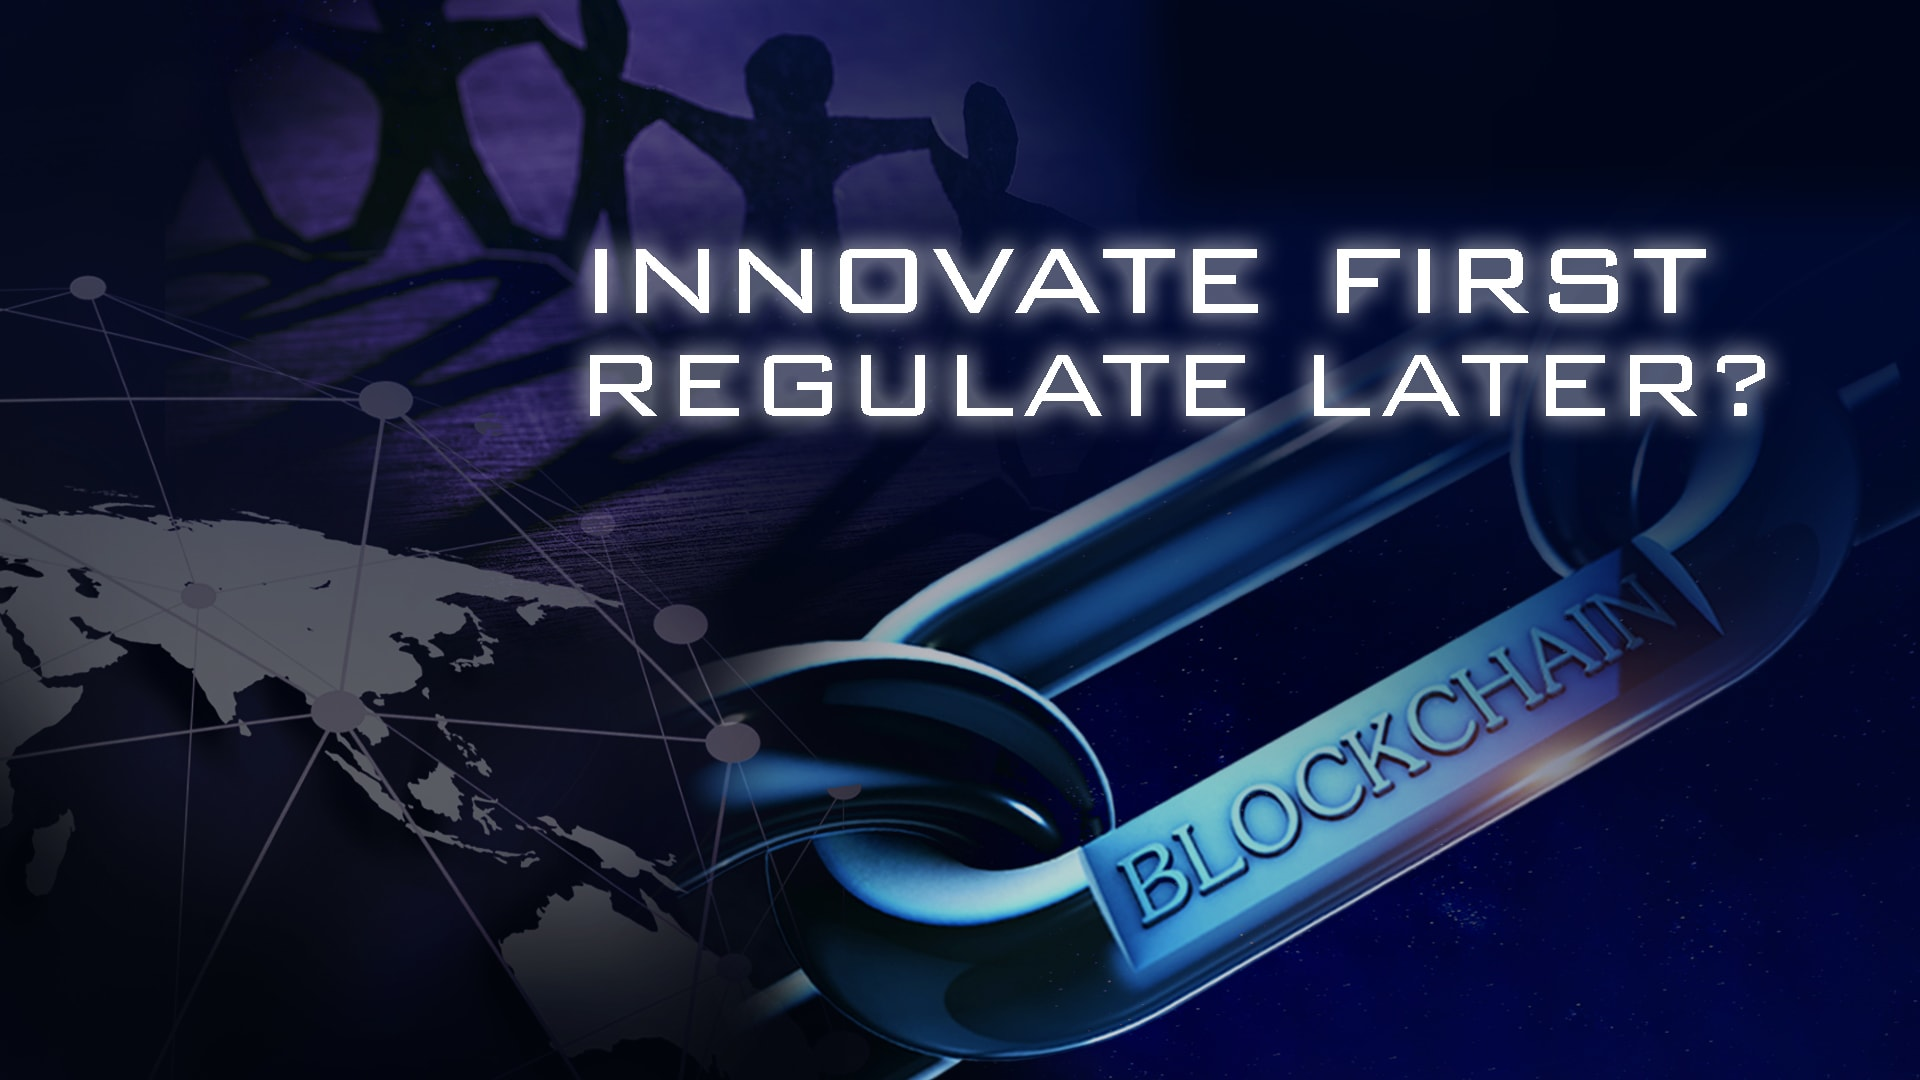 Innovate first, regulate later: Can we truly build blockchains for a better world?